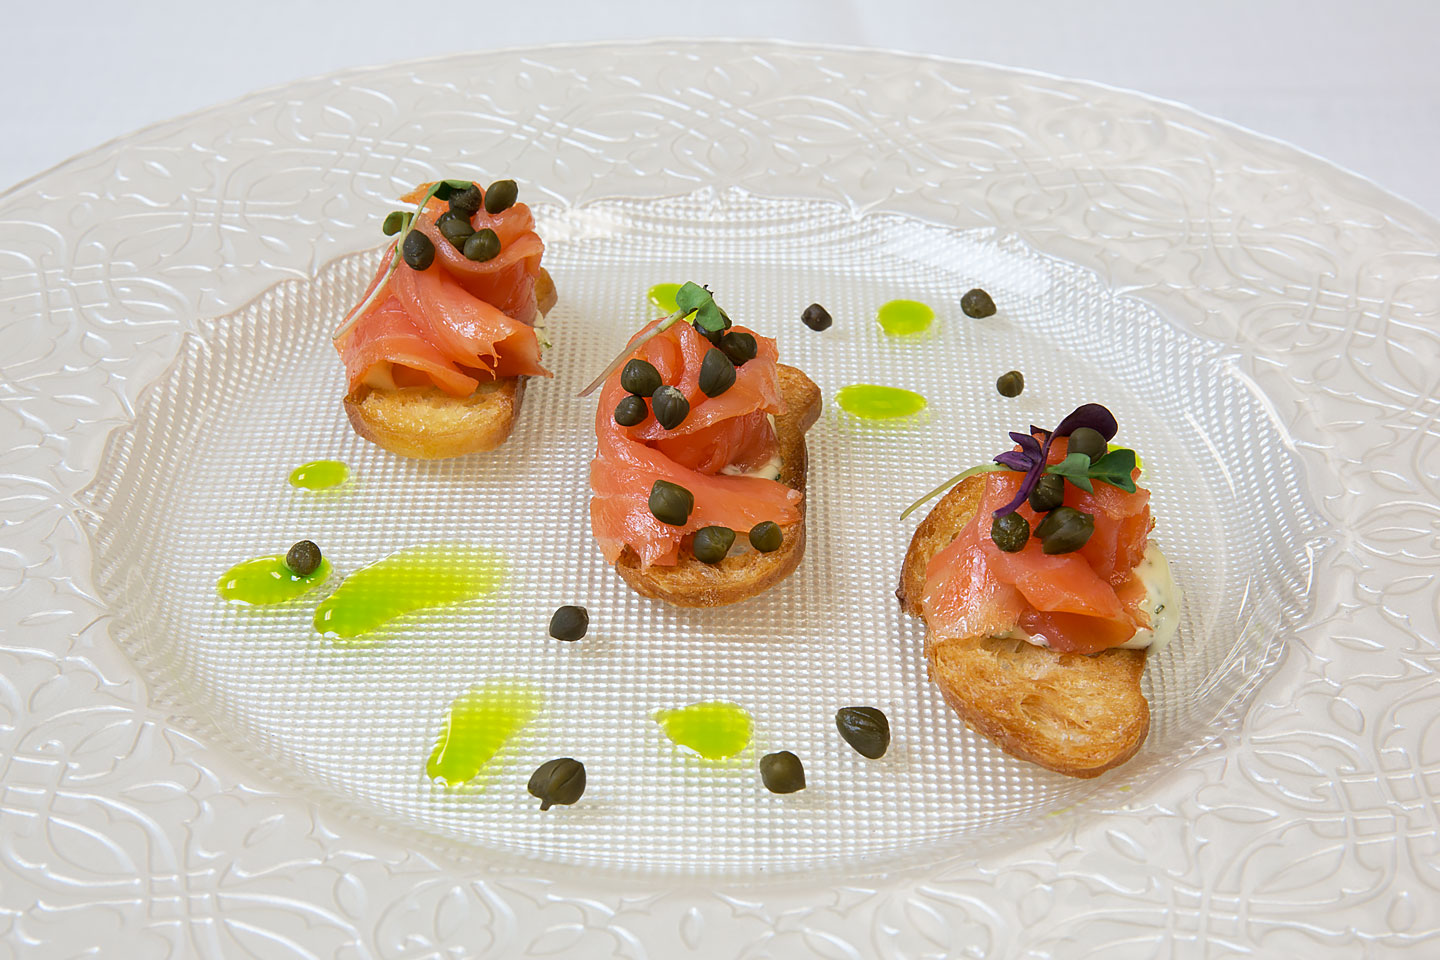 a beautiful looking salmon crustini appetizer, photographed by Jacob Rosenfeld